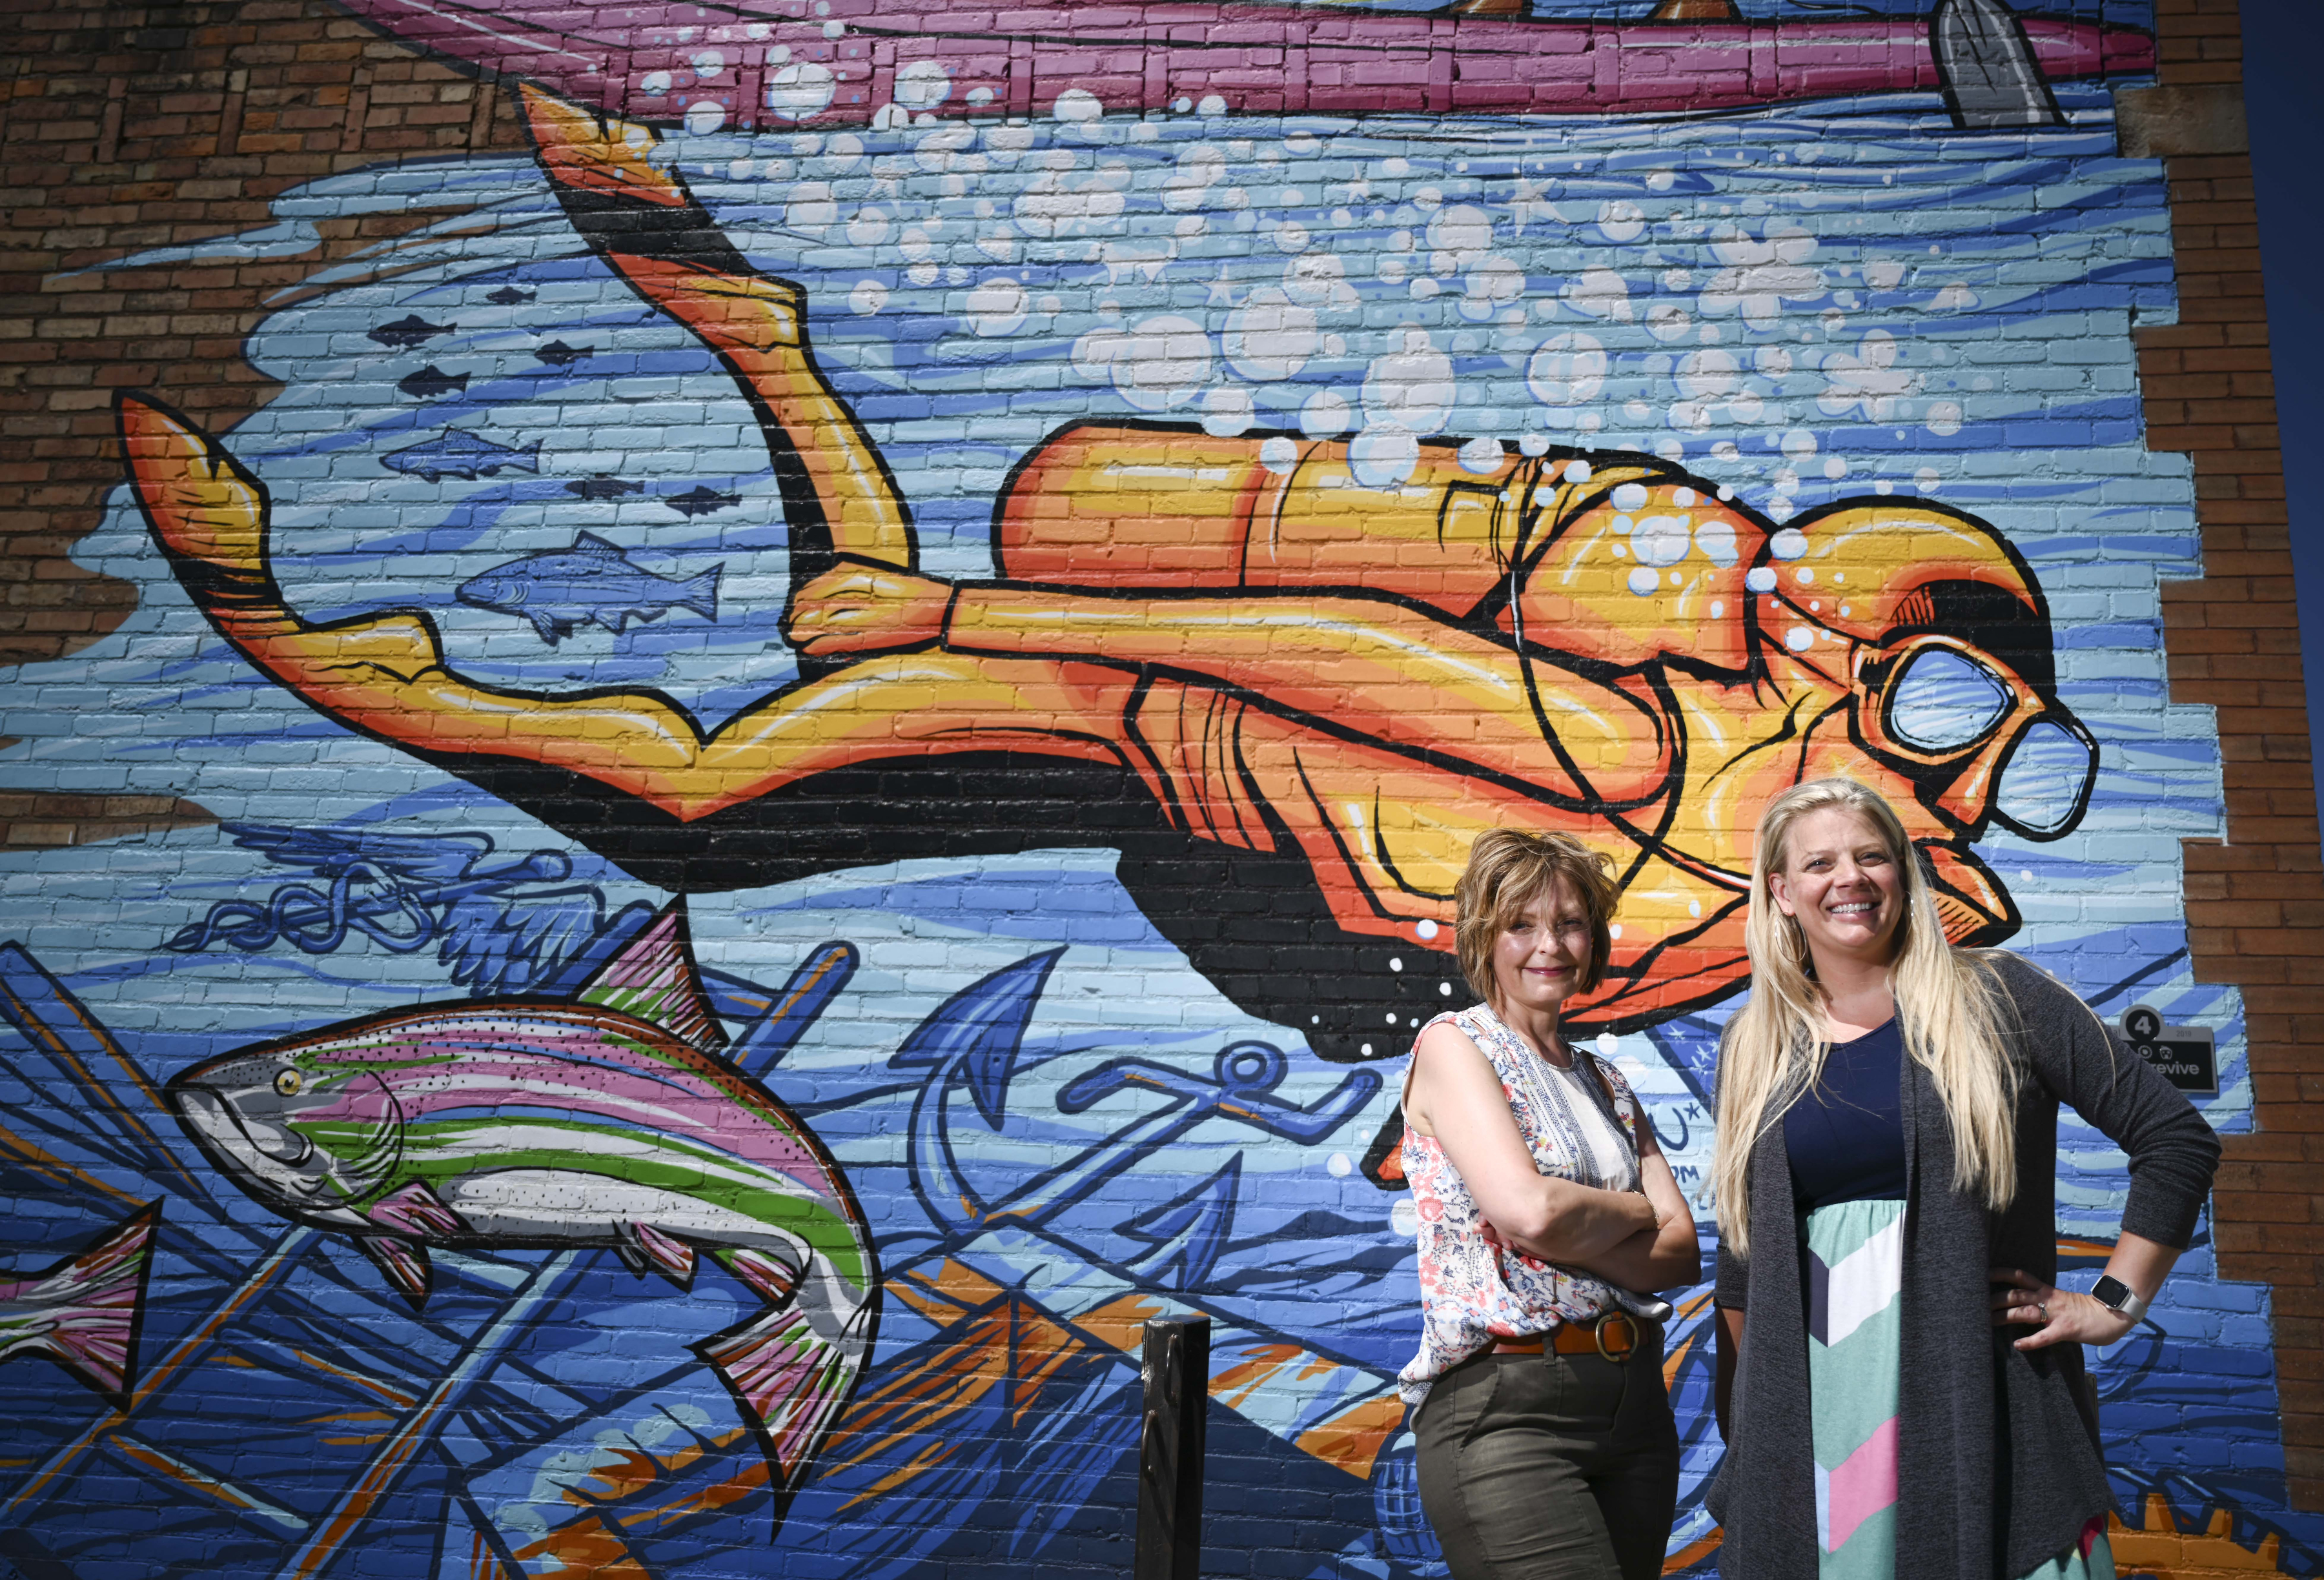 With input and buy-in from Cuyuna Lakes communities, Michelle LeMieur, left, and Johnna Johnson and other residents have led revitilization projects. One of them is public art: eight building murals.